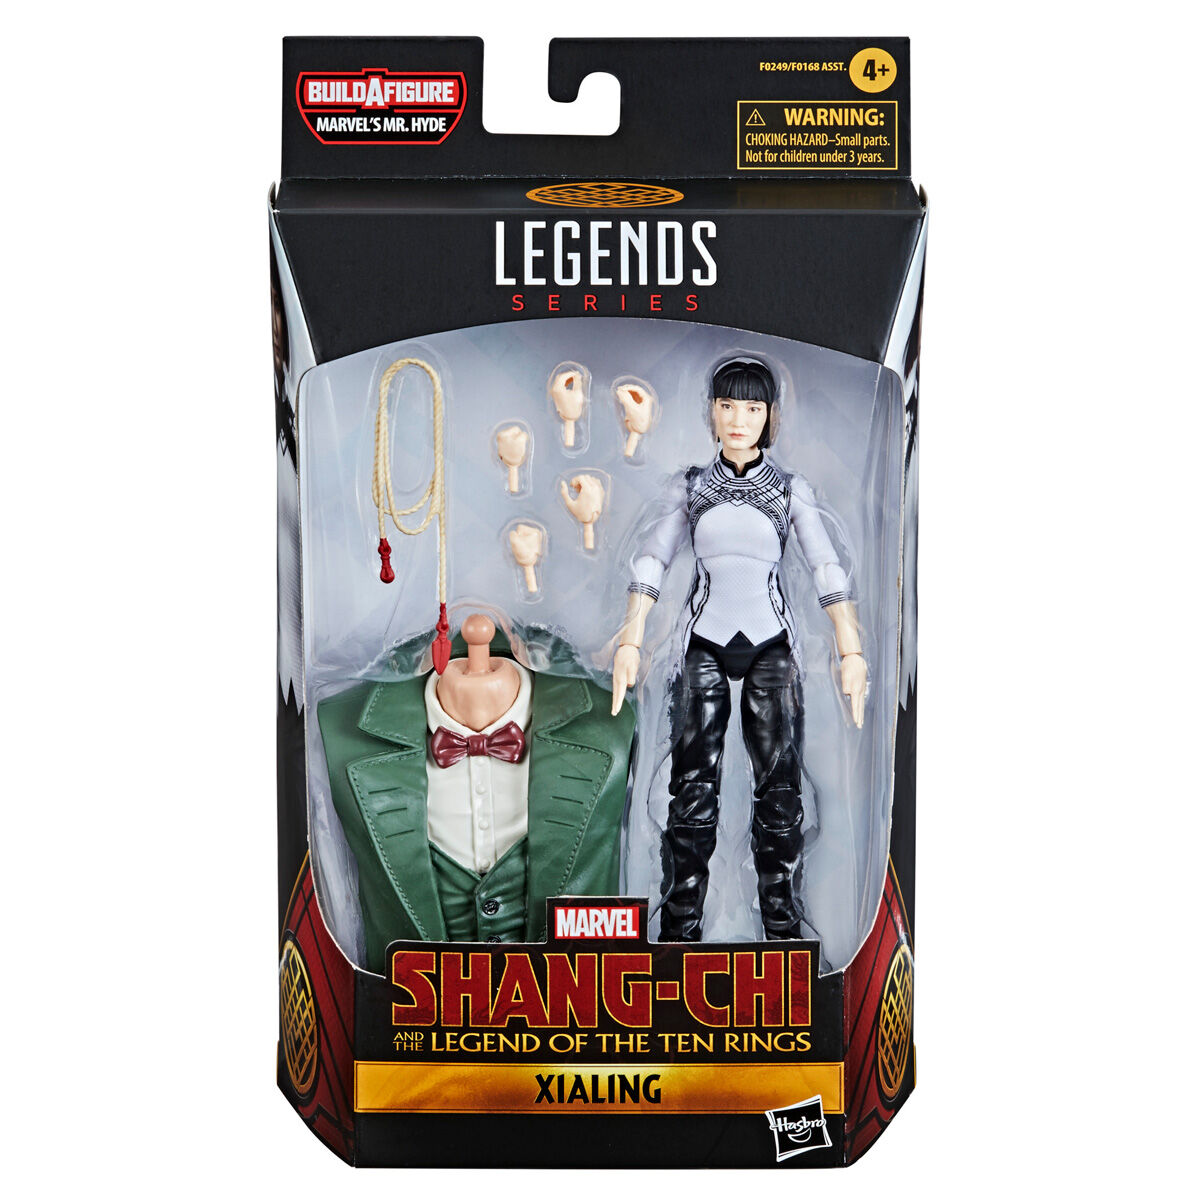 Figura Xialing Shang-Chi and the Legend of the Ten Rings Marvel 15cm 5010993790470